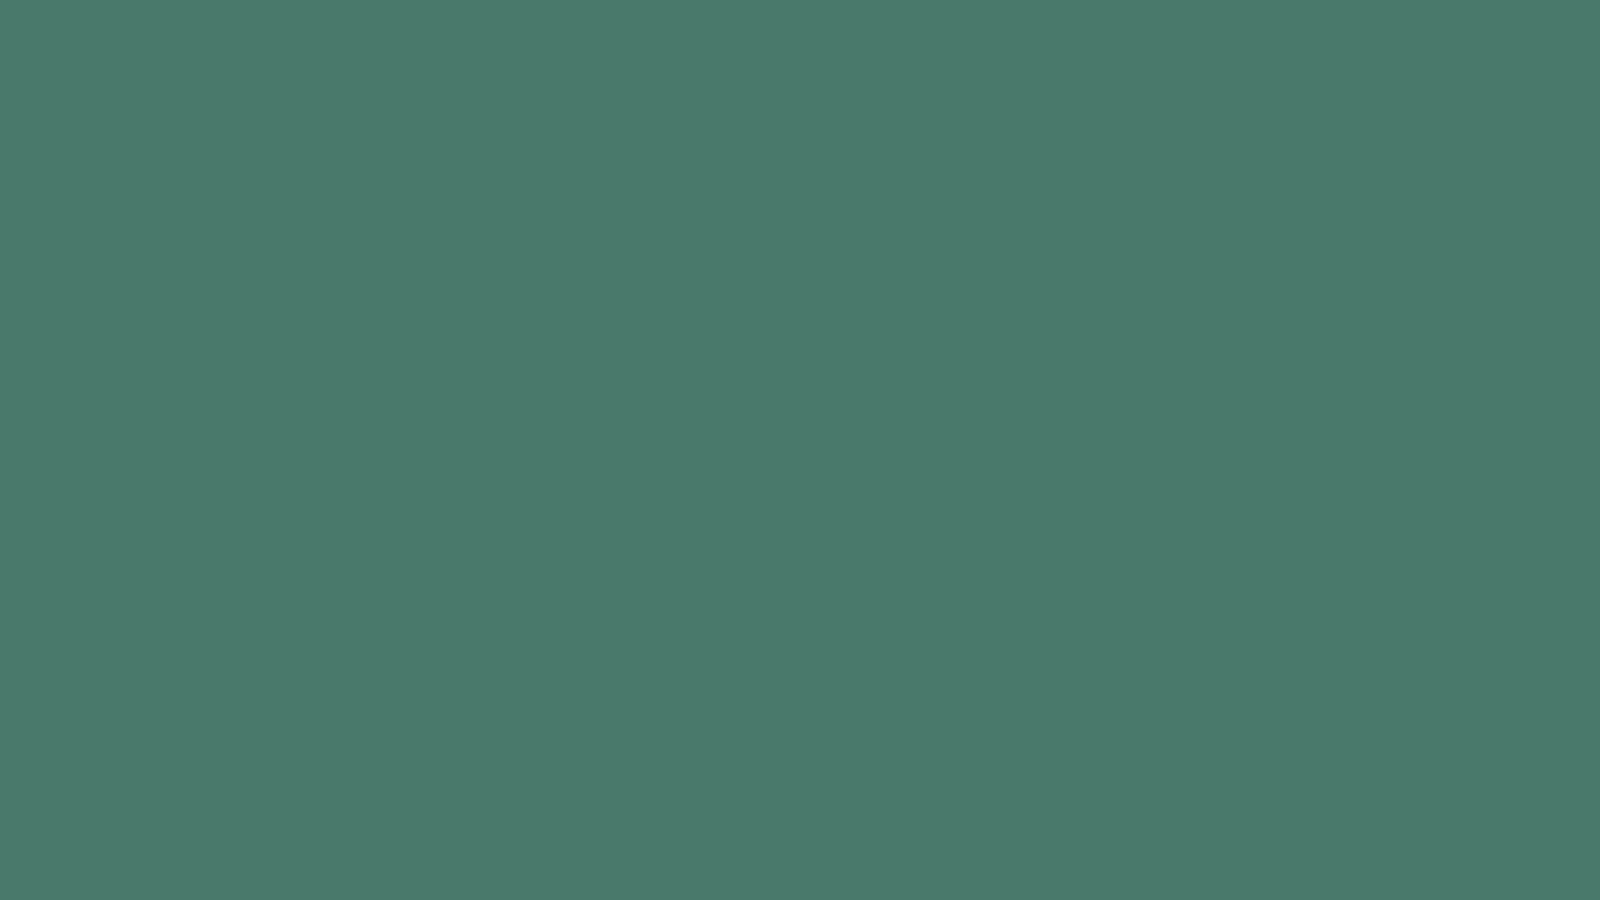 1600x900 Hookers Green Solid Color Background